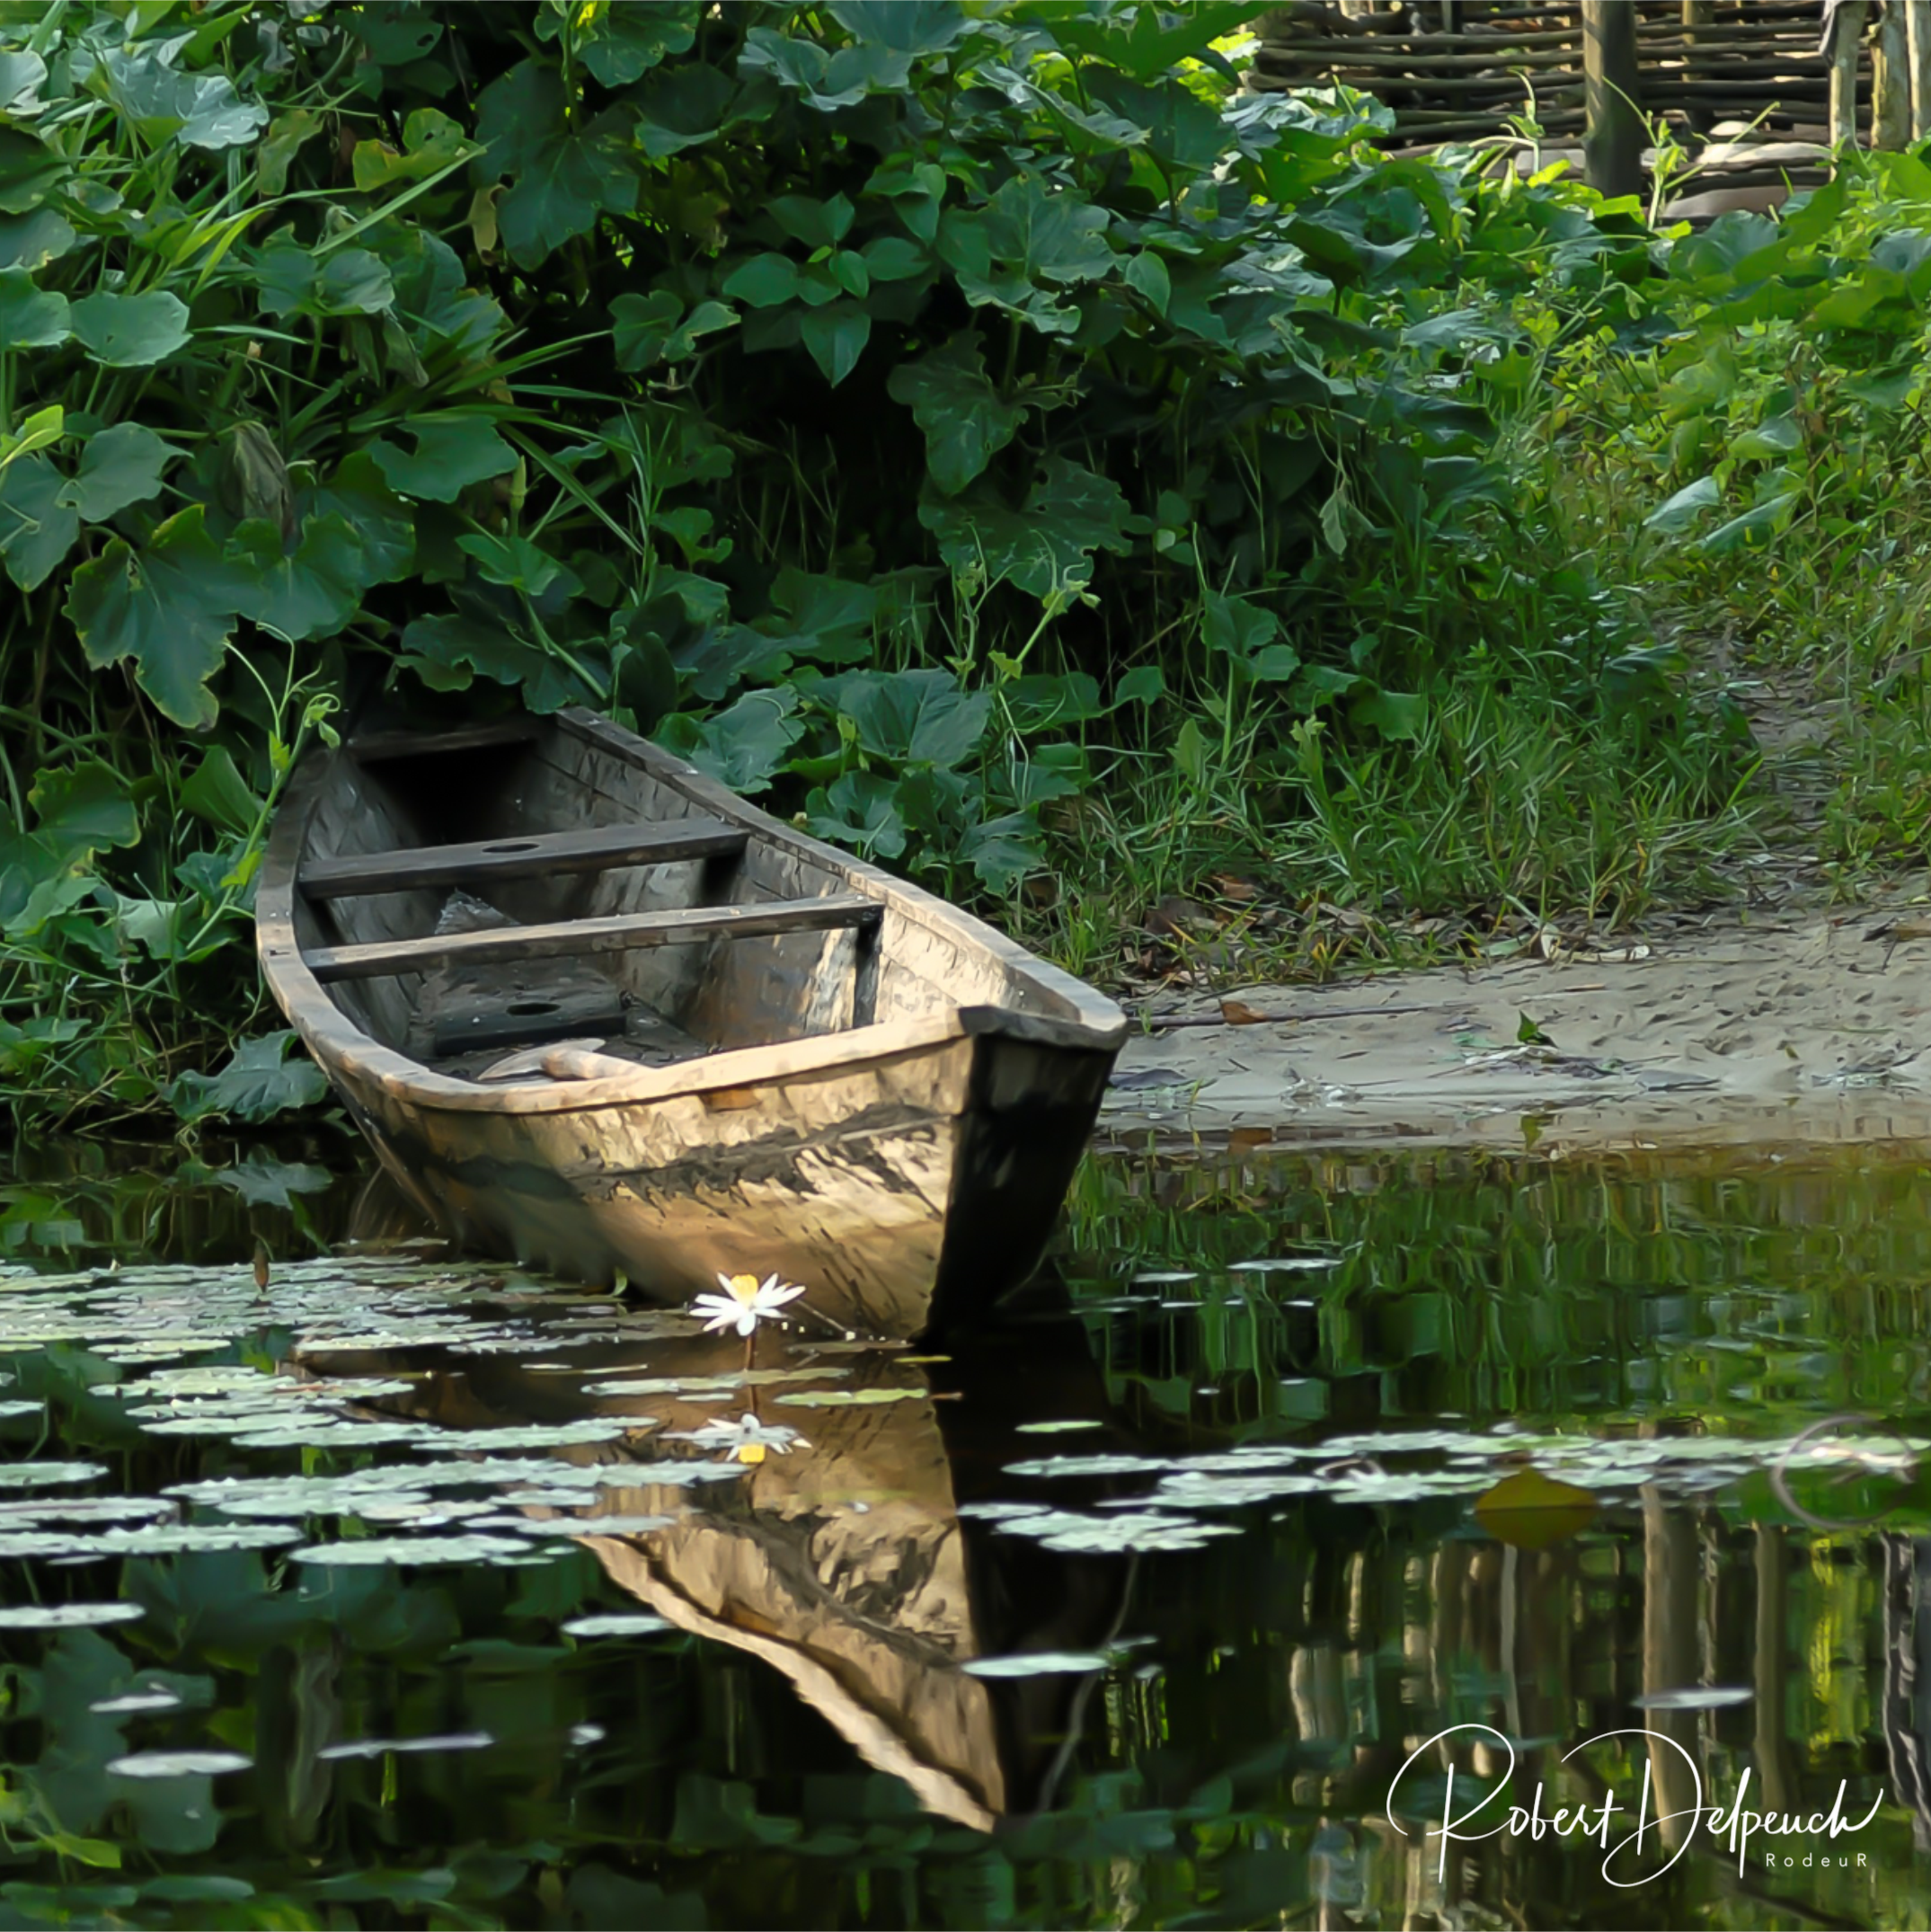 Transport en pirogue